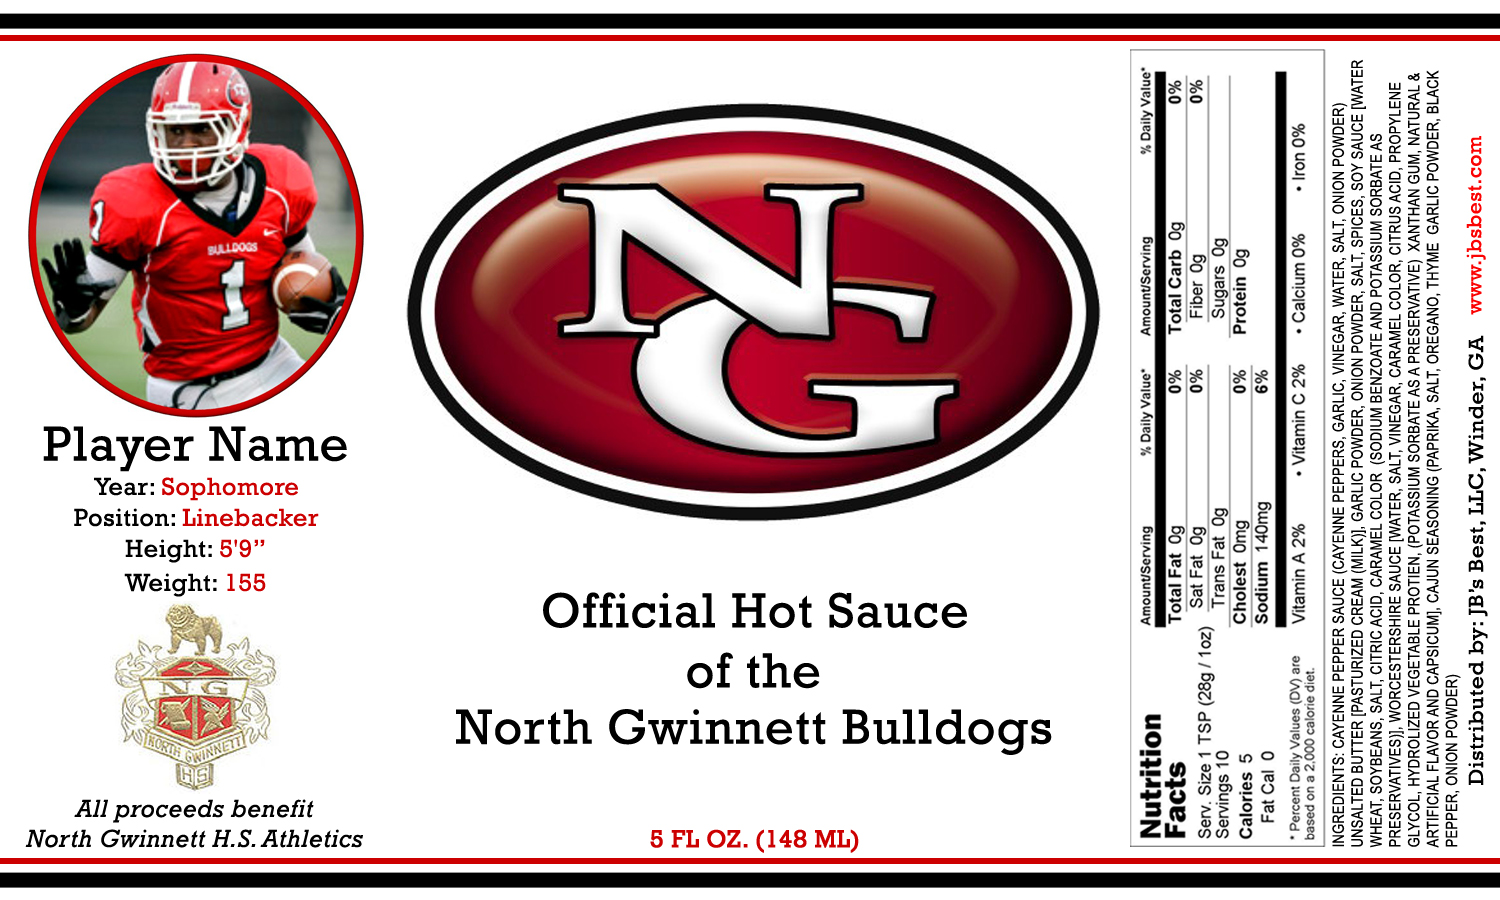 north-gwinnett-bulldogs-image